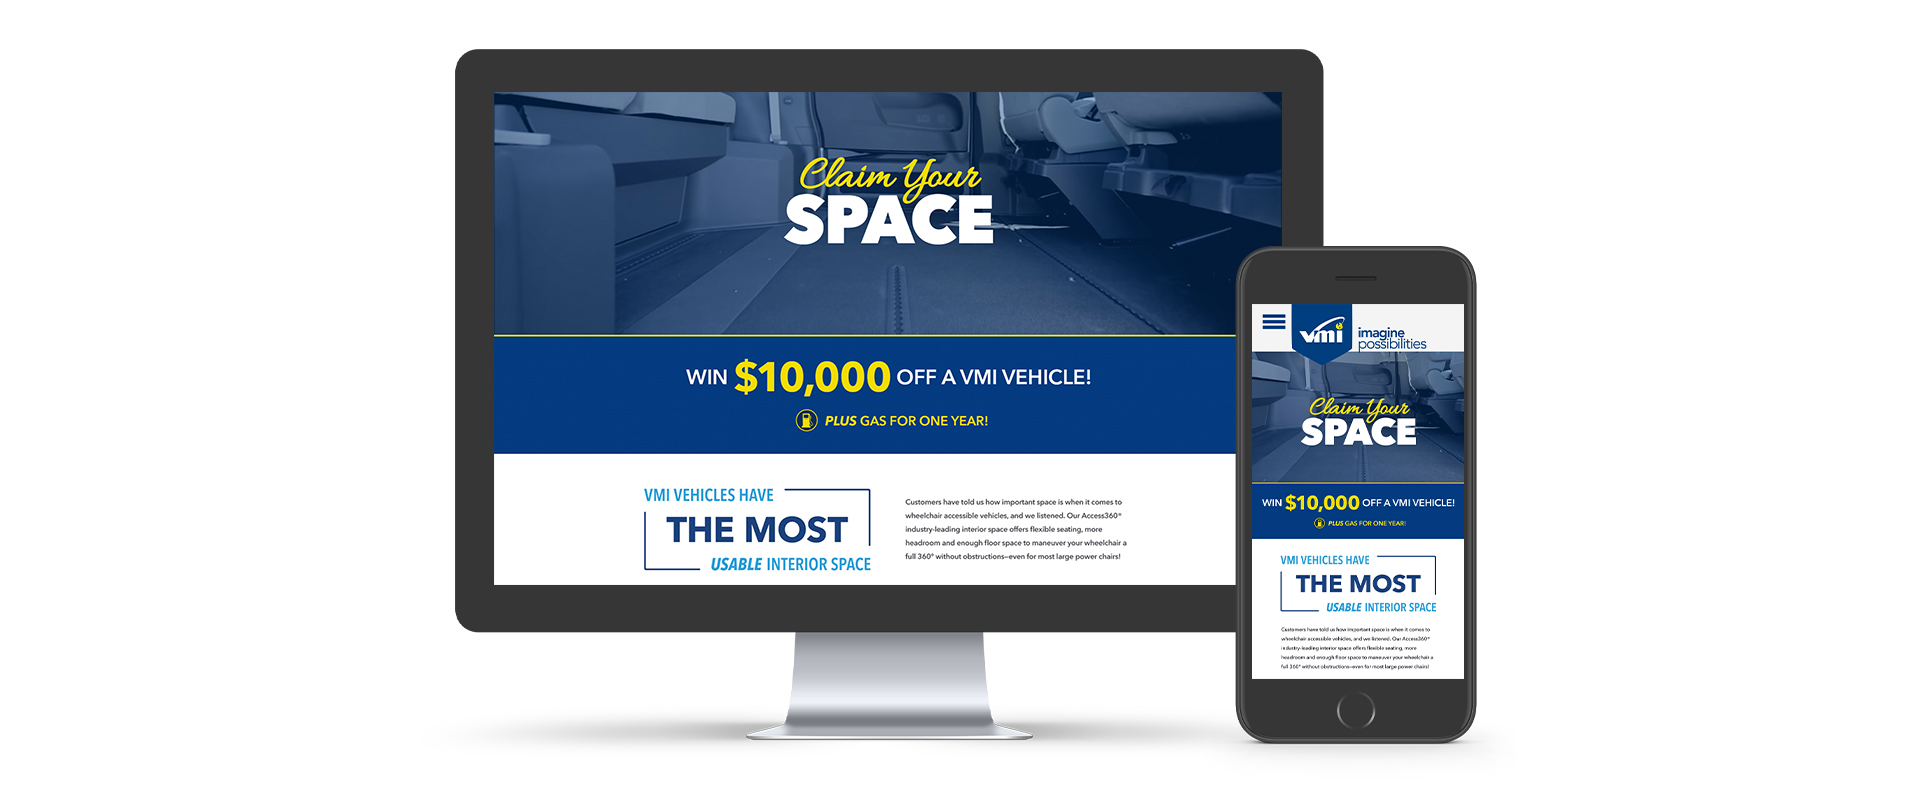 Claim Your Space landing page mockup on desktop and mobile